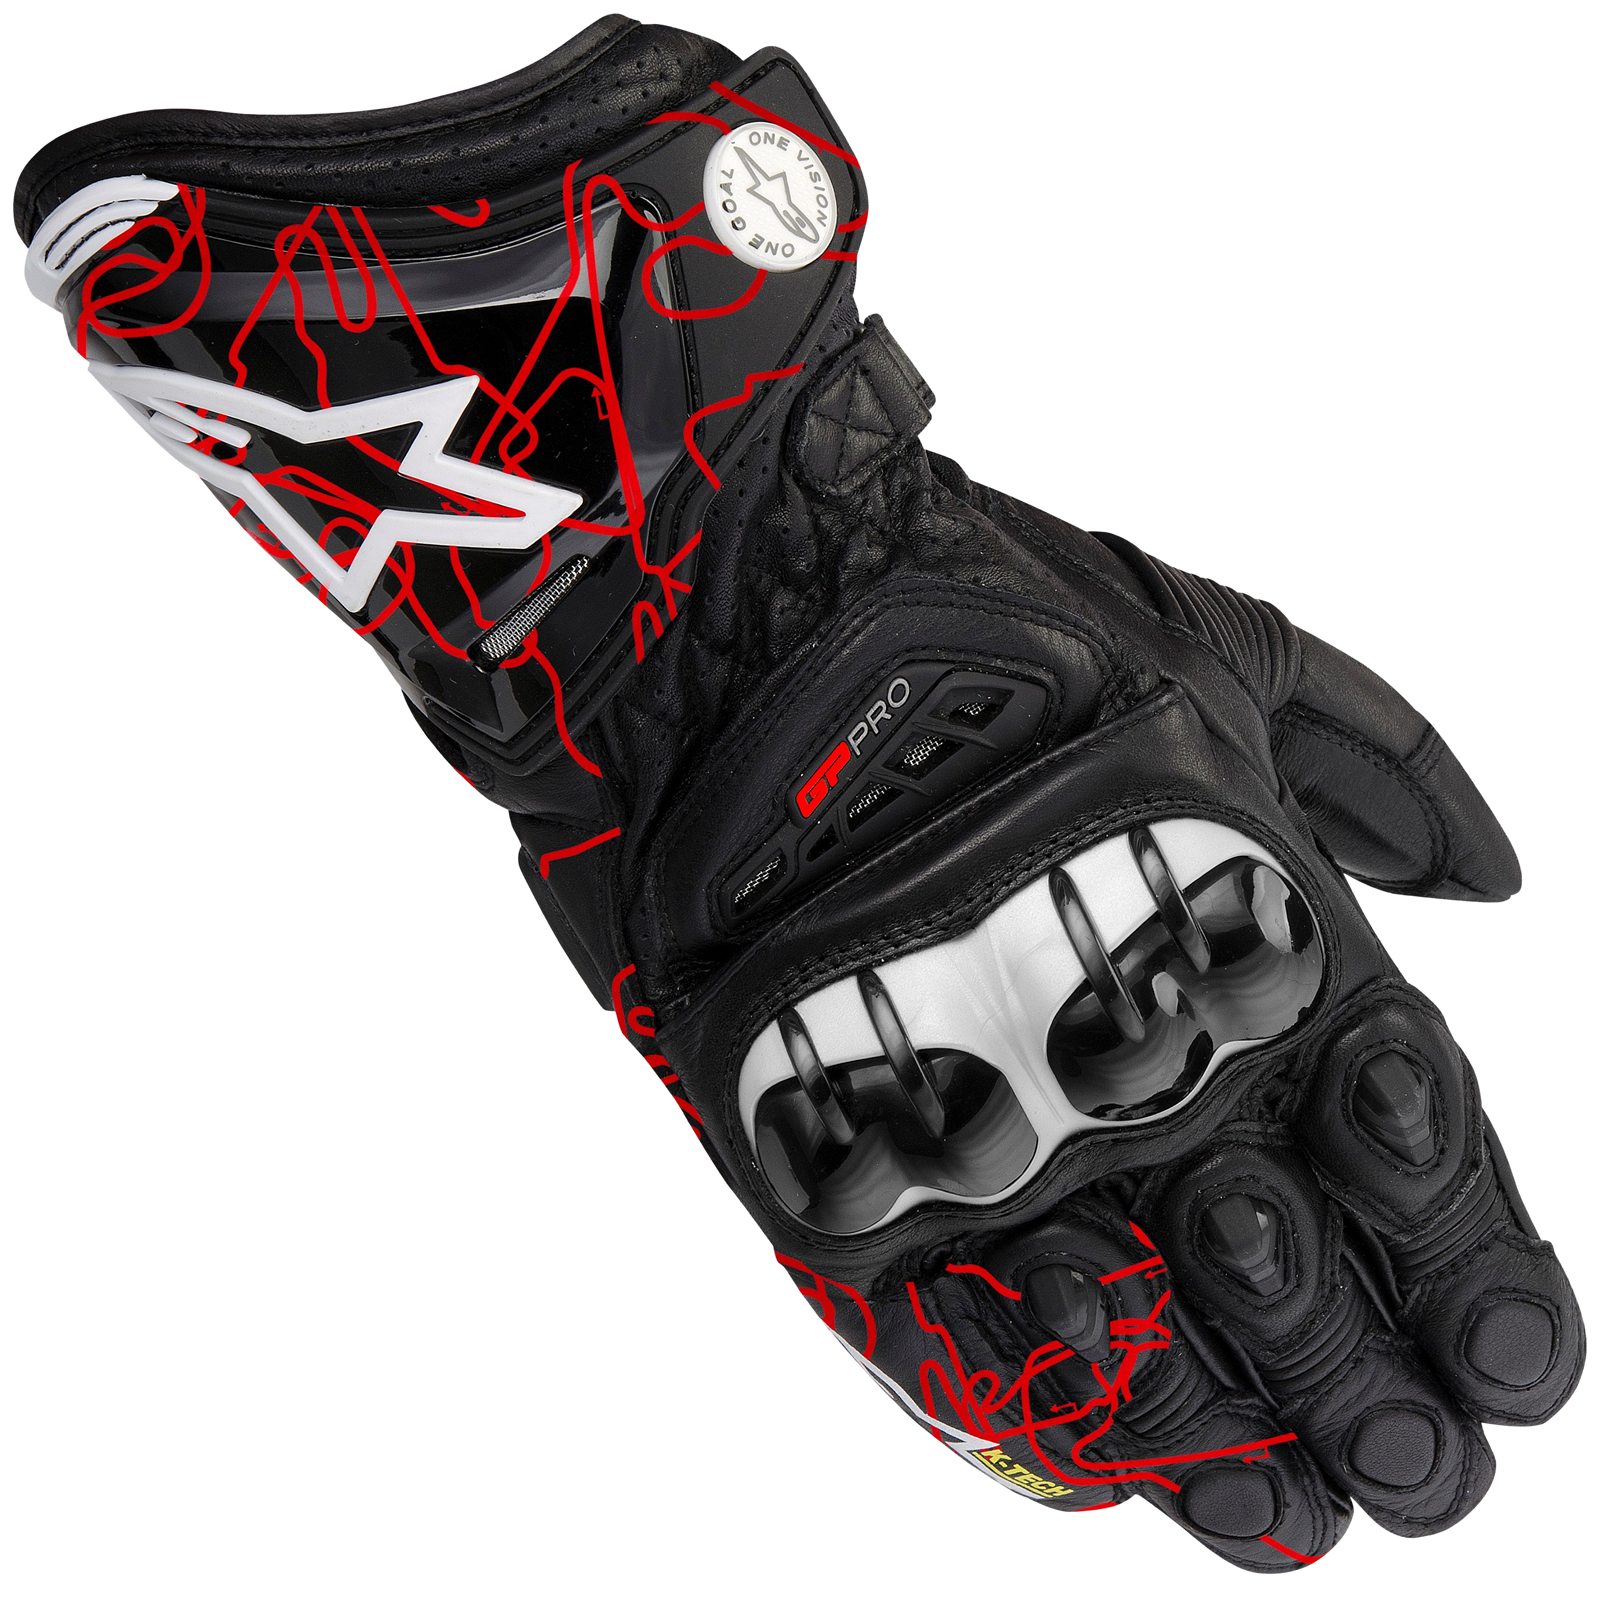 alpinestars 2013 gp pro motorcycle racing sports summer kevlar leather gloves ebay. Black Bedroom Furniture Sets. Home Design Ideas